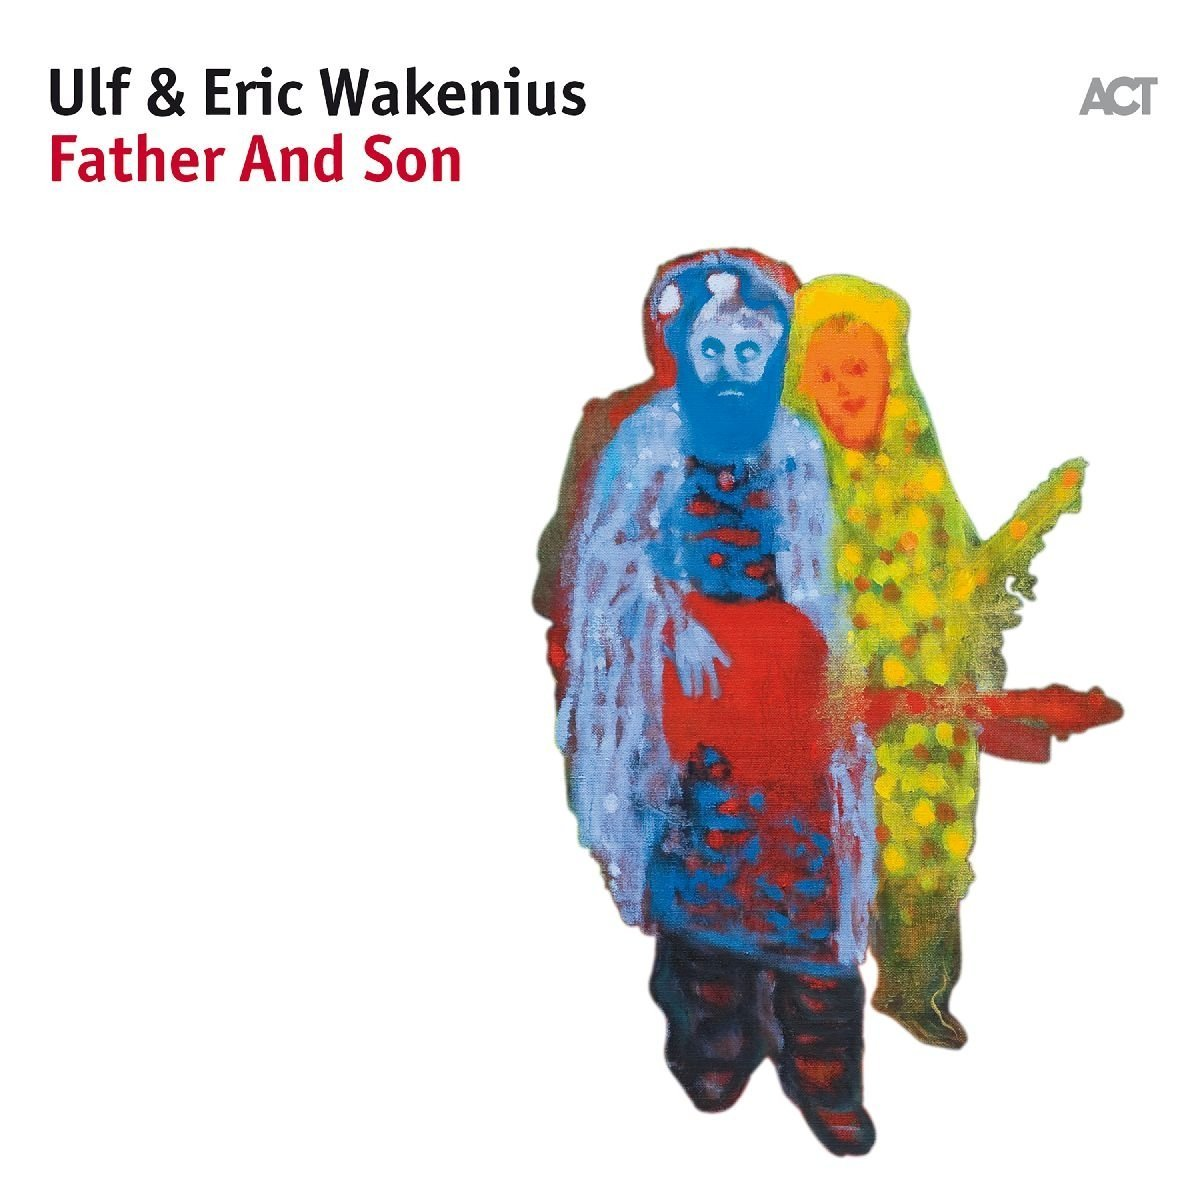 Ulf & Eric Wakenius</br> Father And Son</br> ACT, 2017